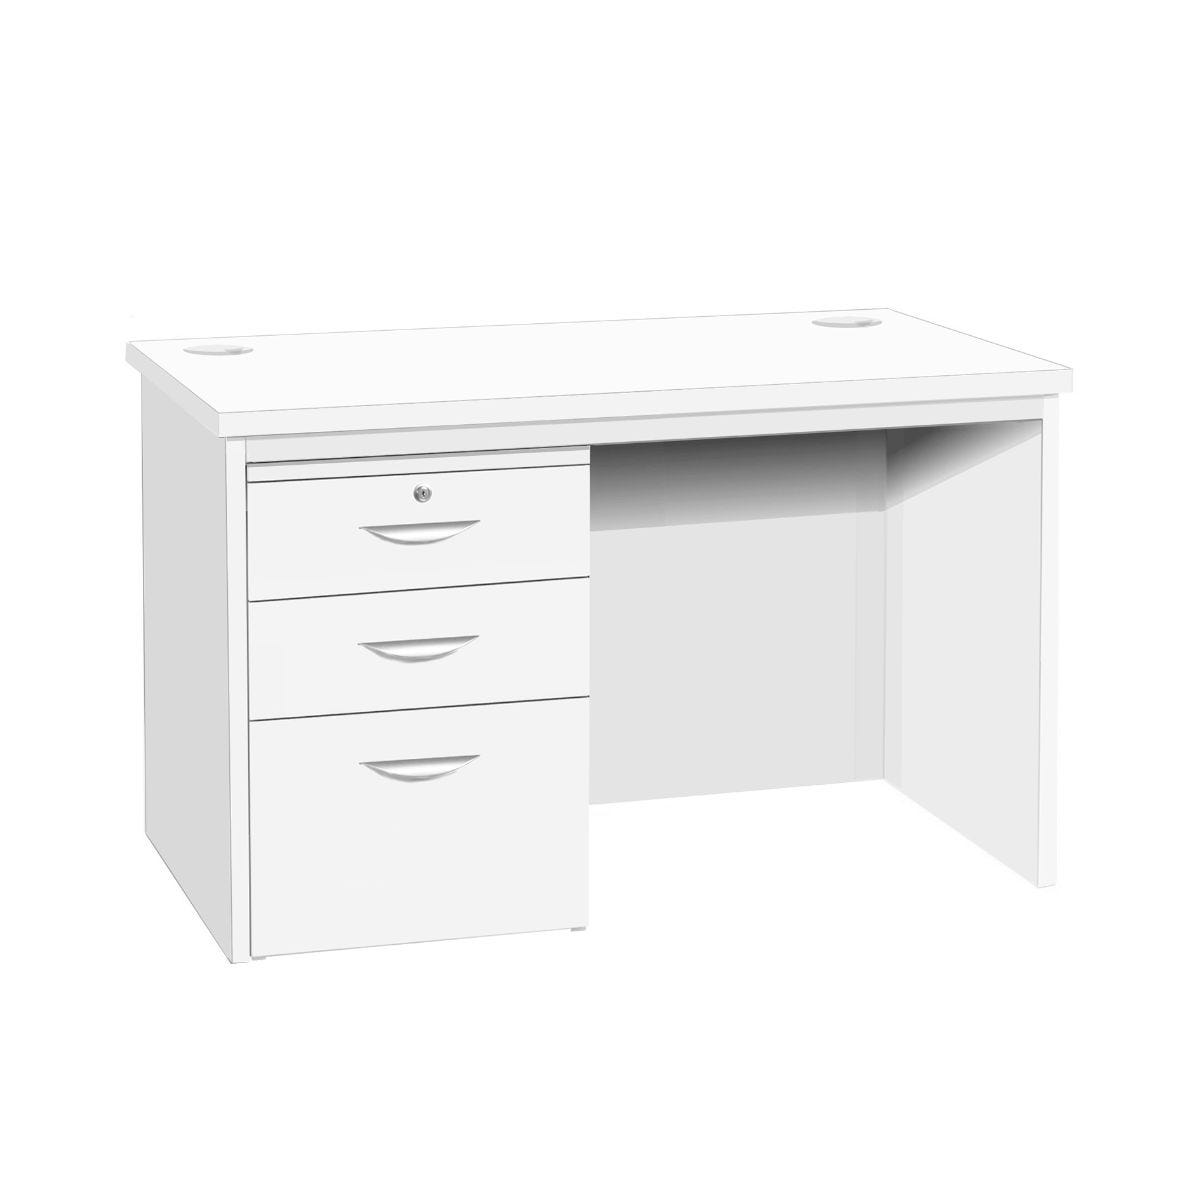 R White Home Office Freestanding Desk with Drawers, White